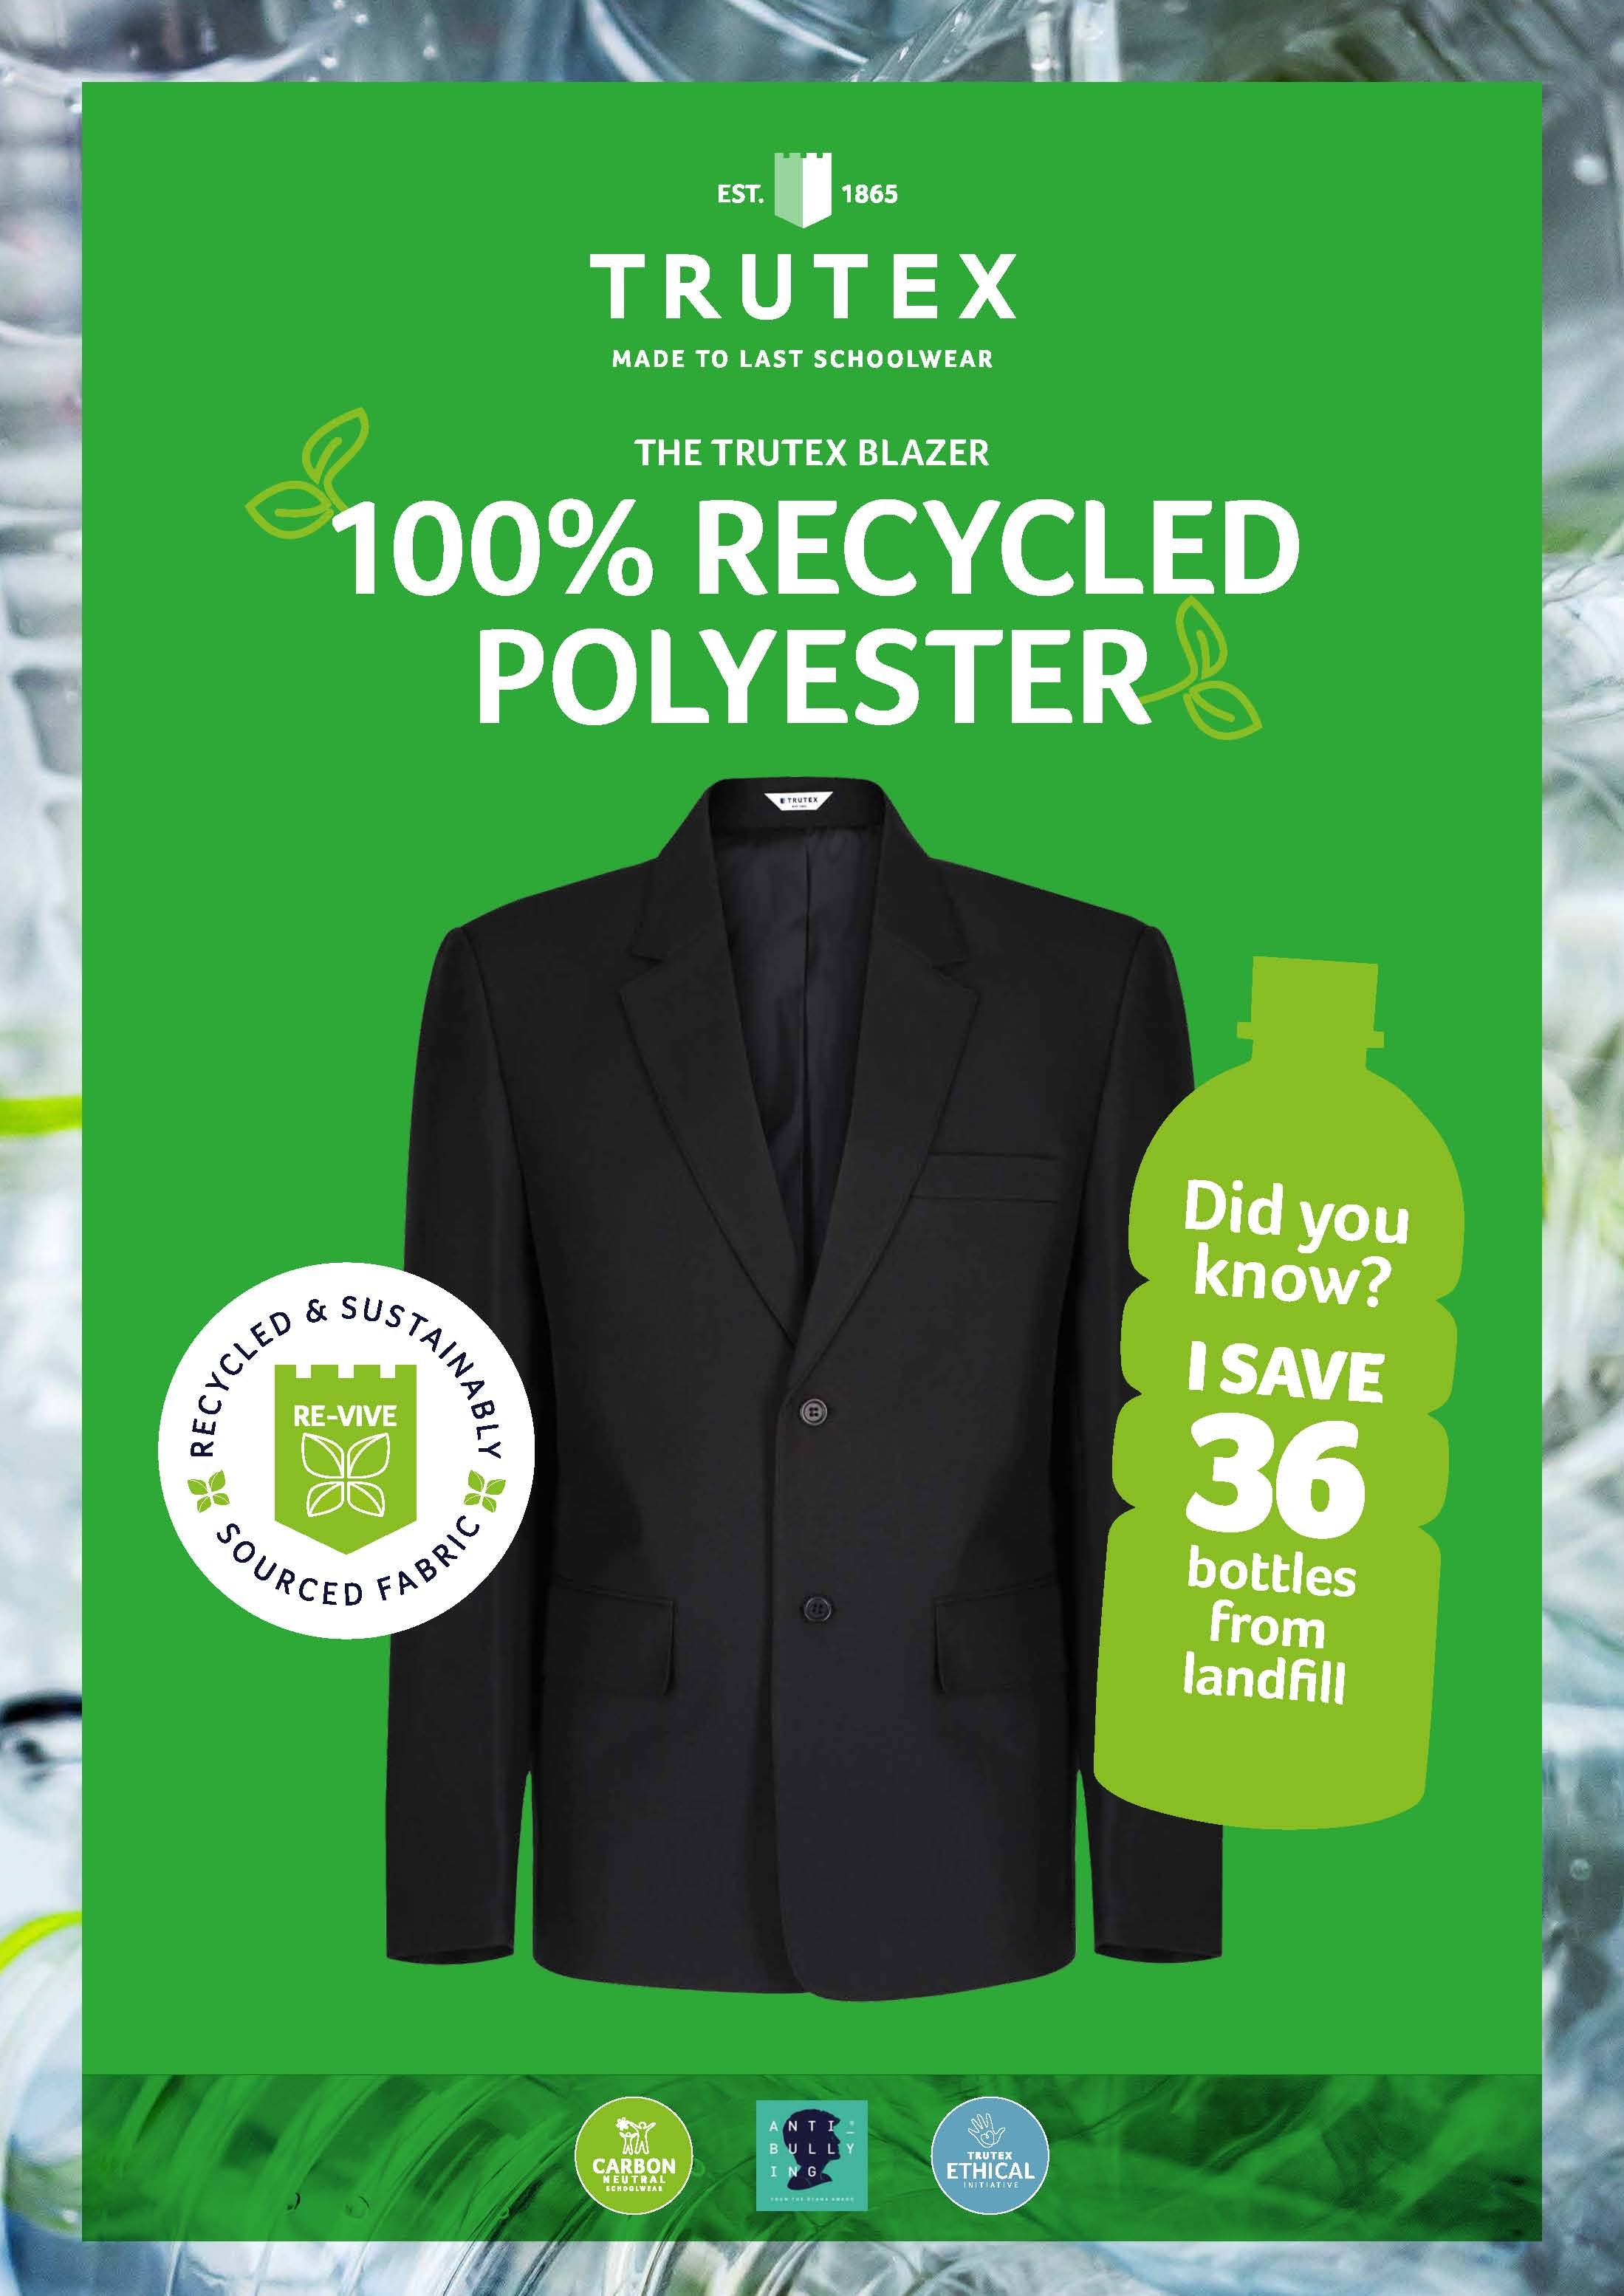 We're so proud to be doing our bit for the environment